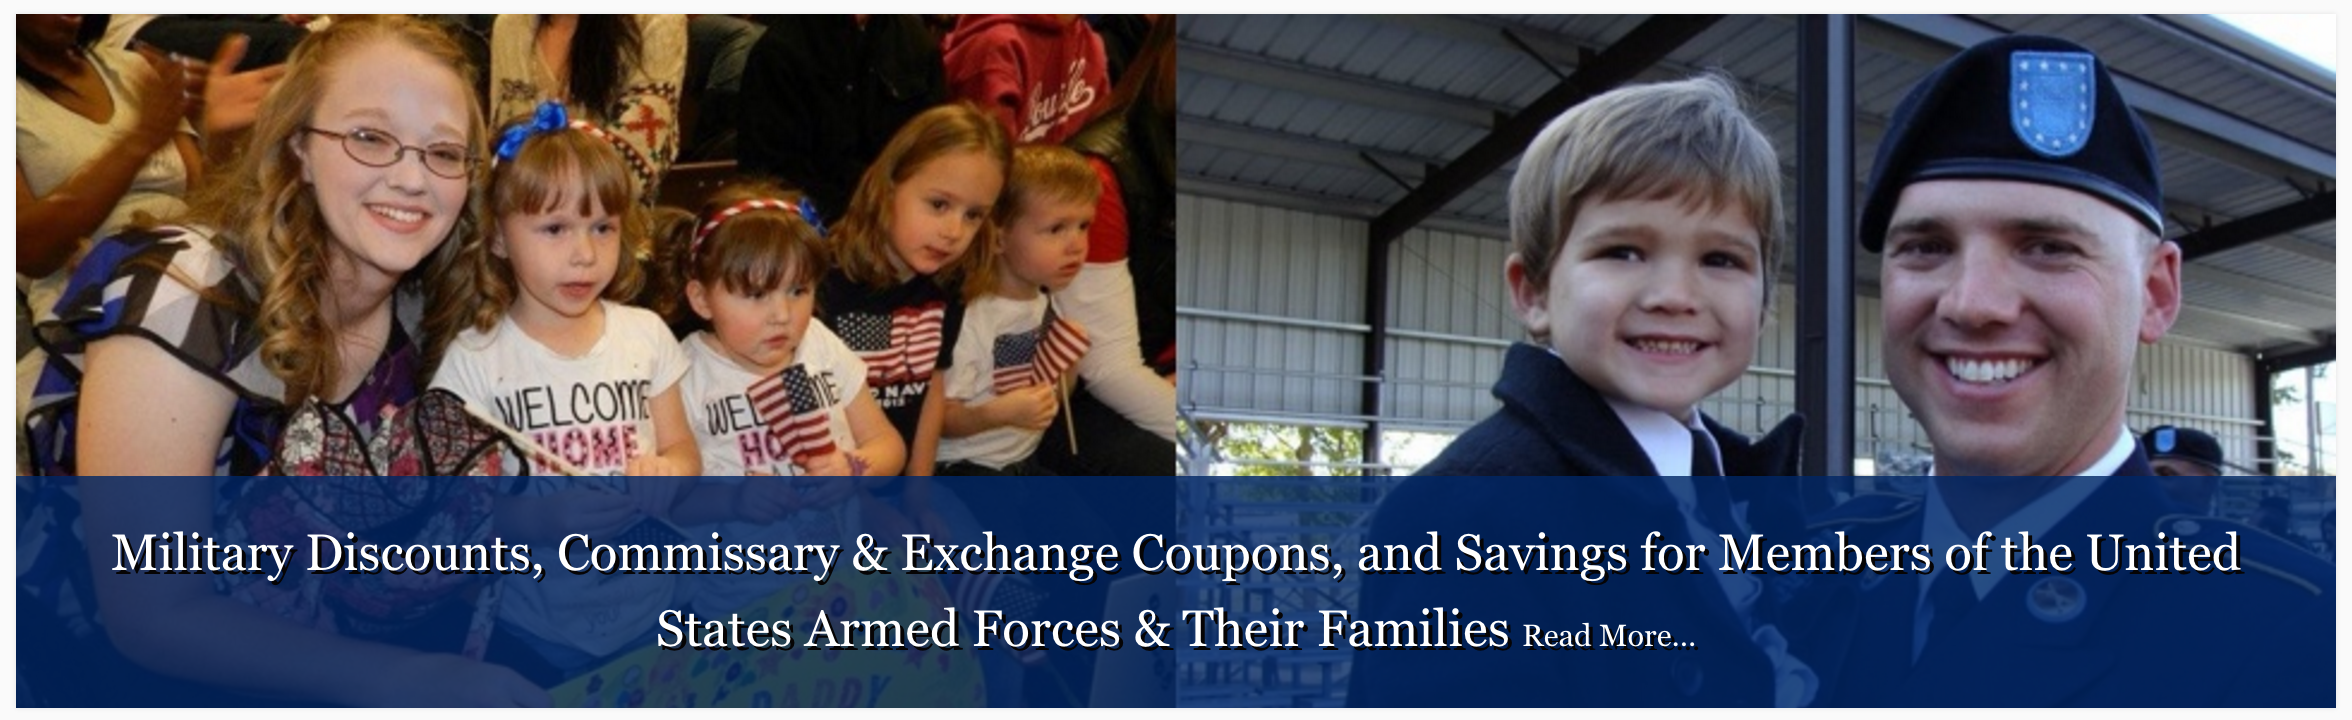 Military exchange coupons